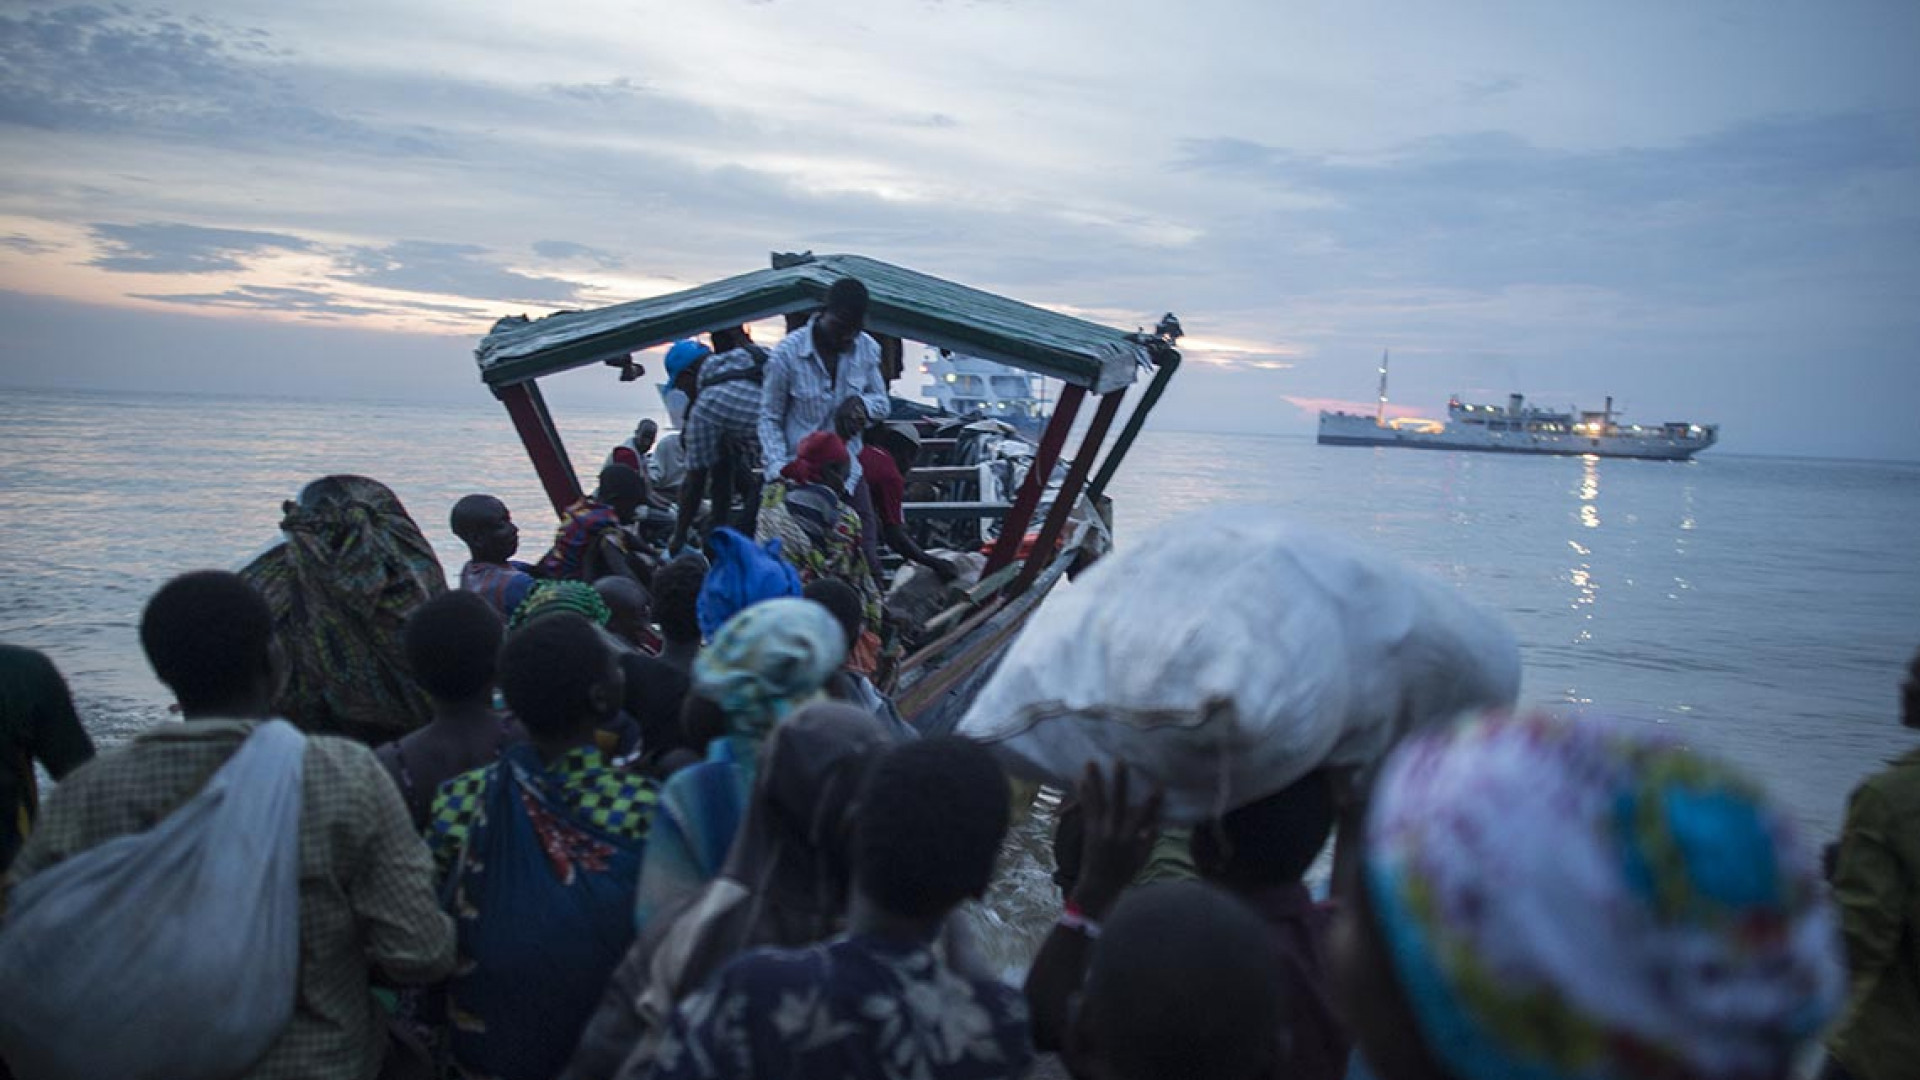 Refugees risking their lives travelling over seas in dangerously overcrowded boats